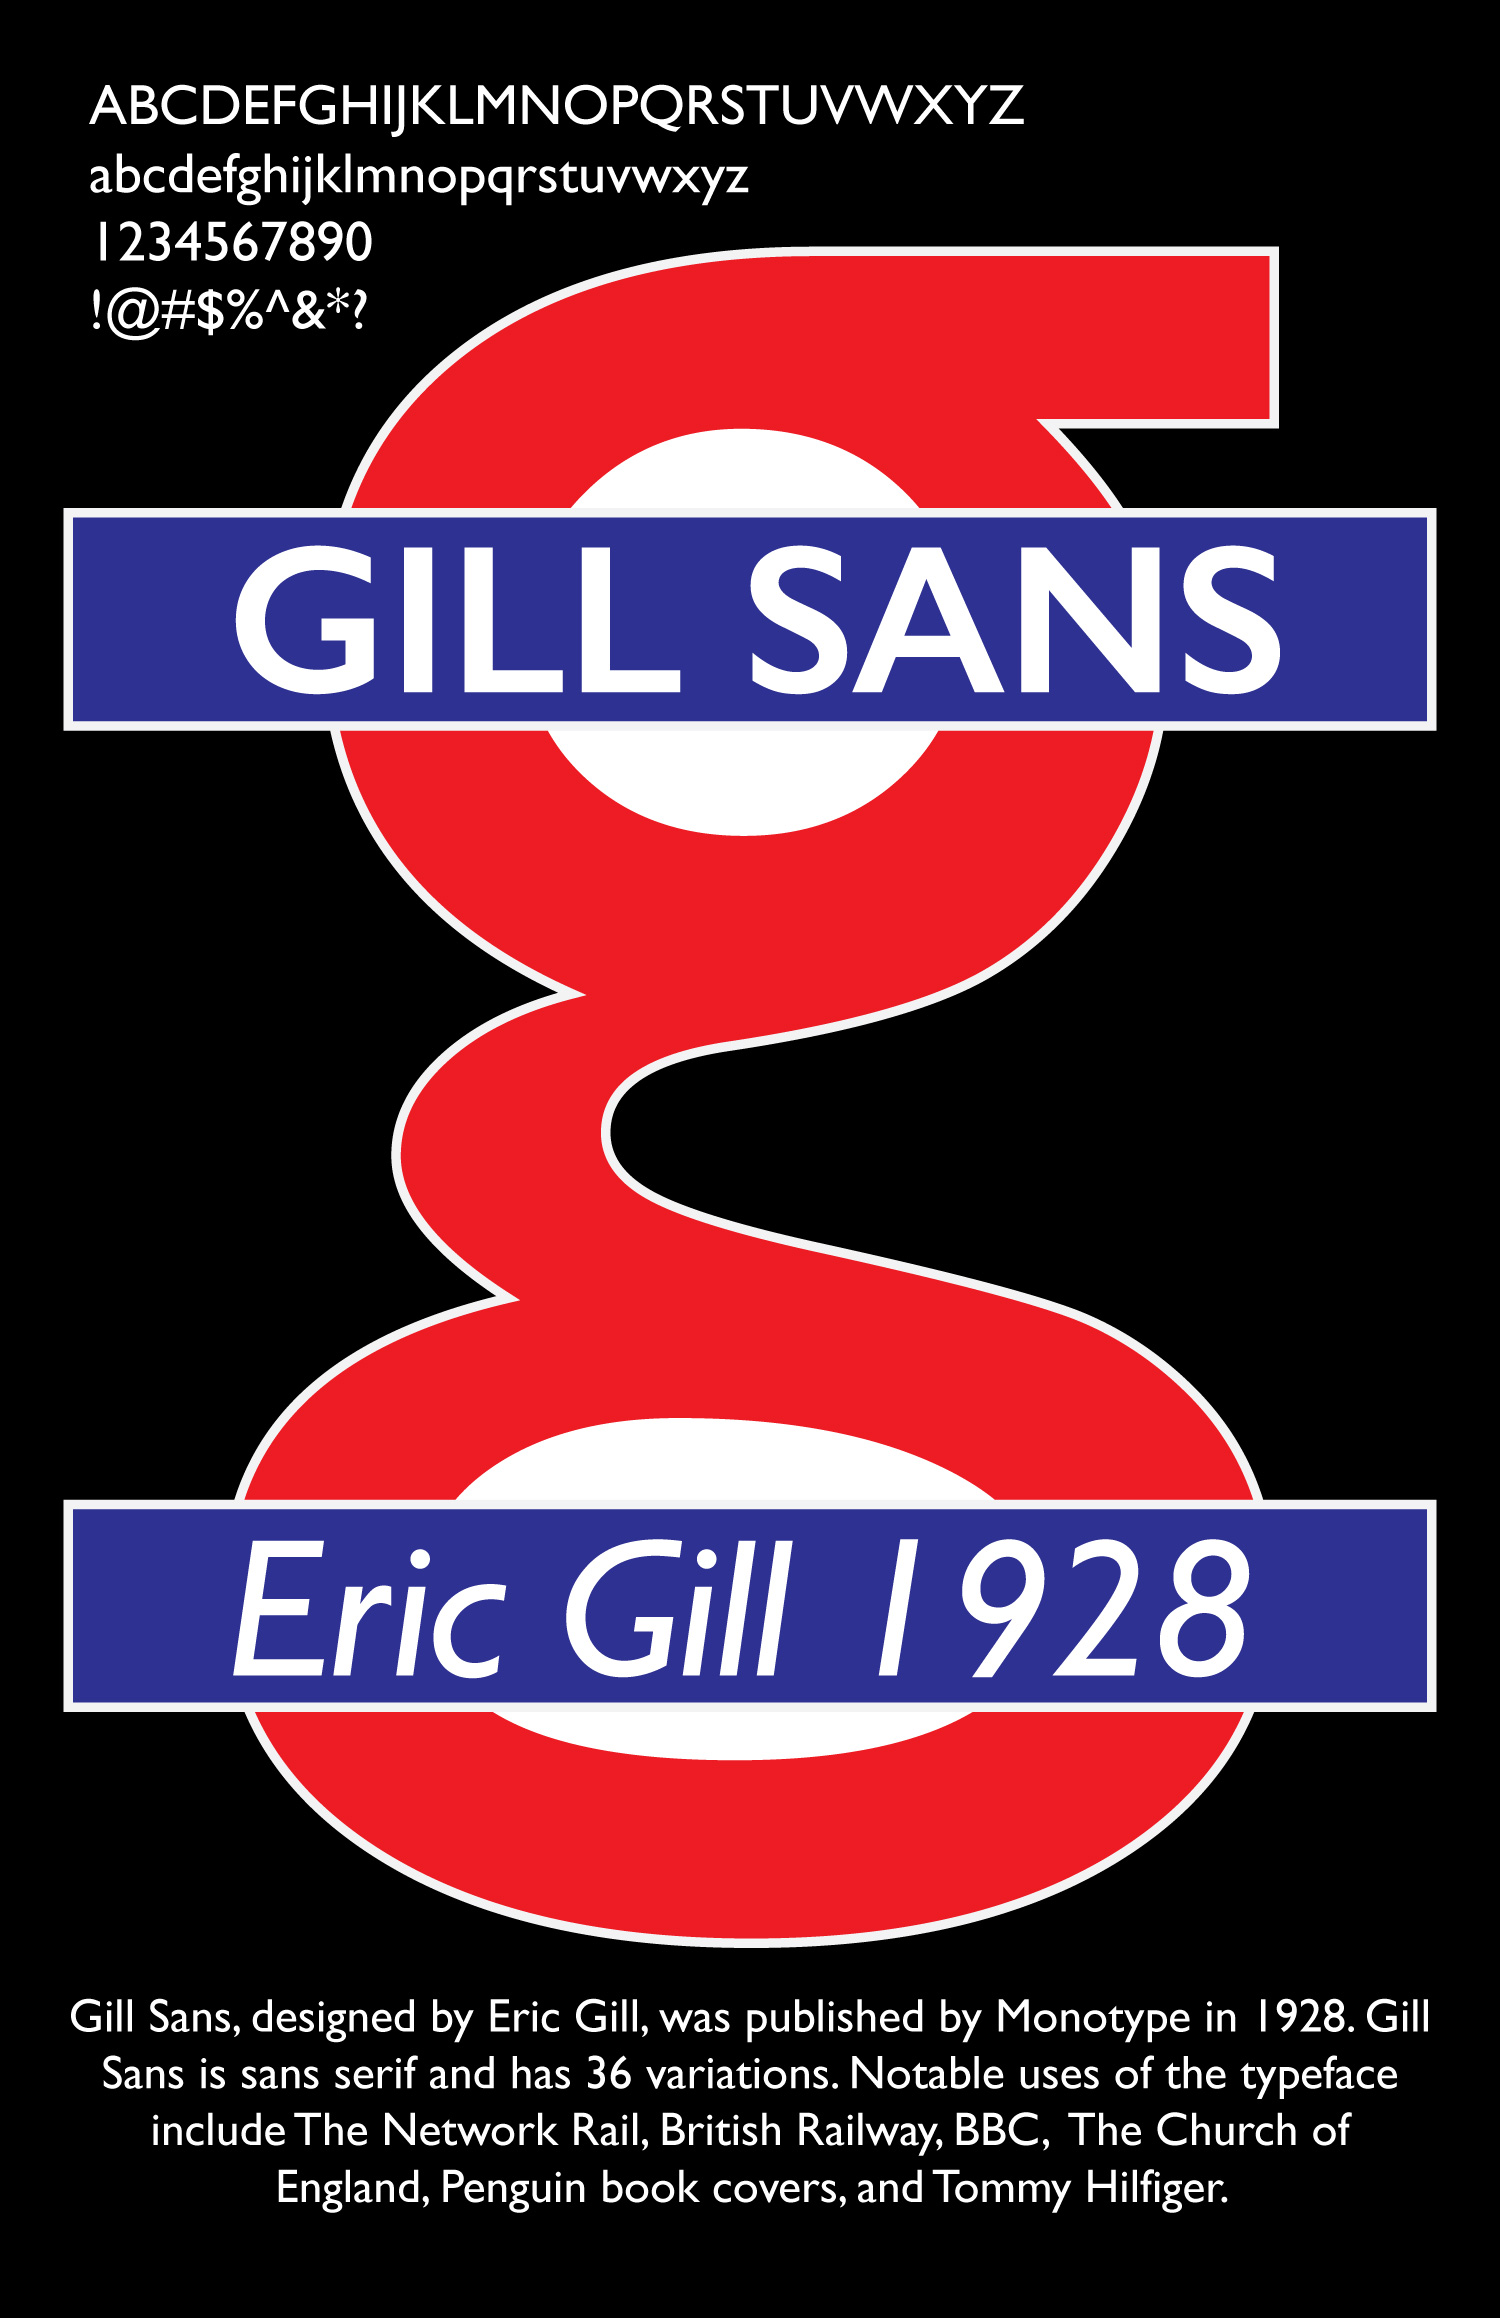 Poster about Gill Sans typeface